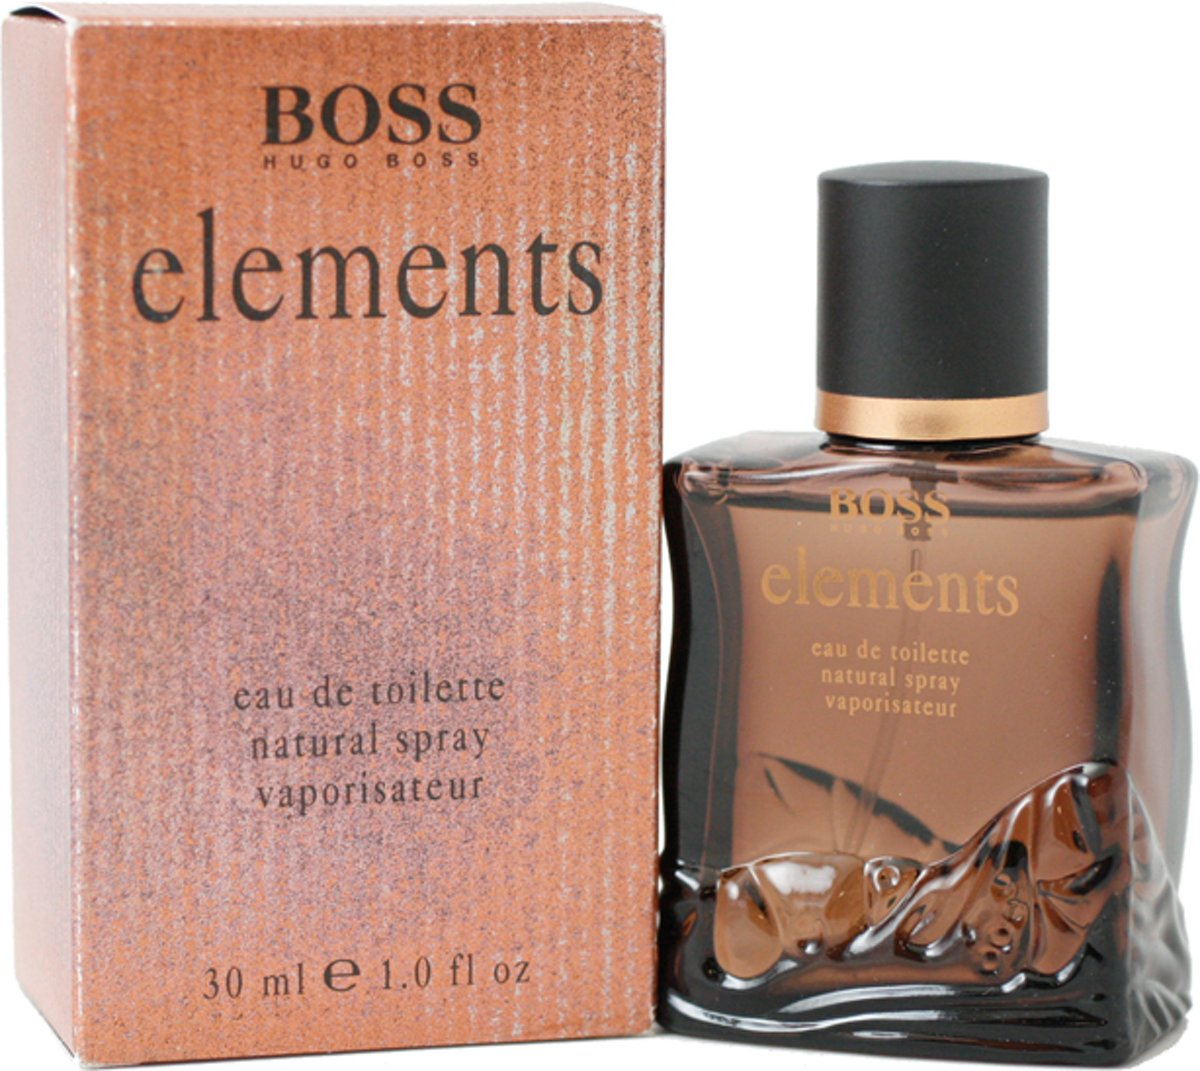 Hugo Boss Elements eau de toilette spray 30 ml